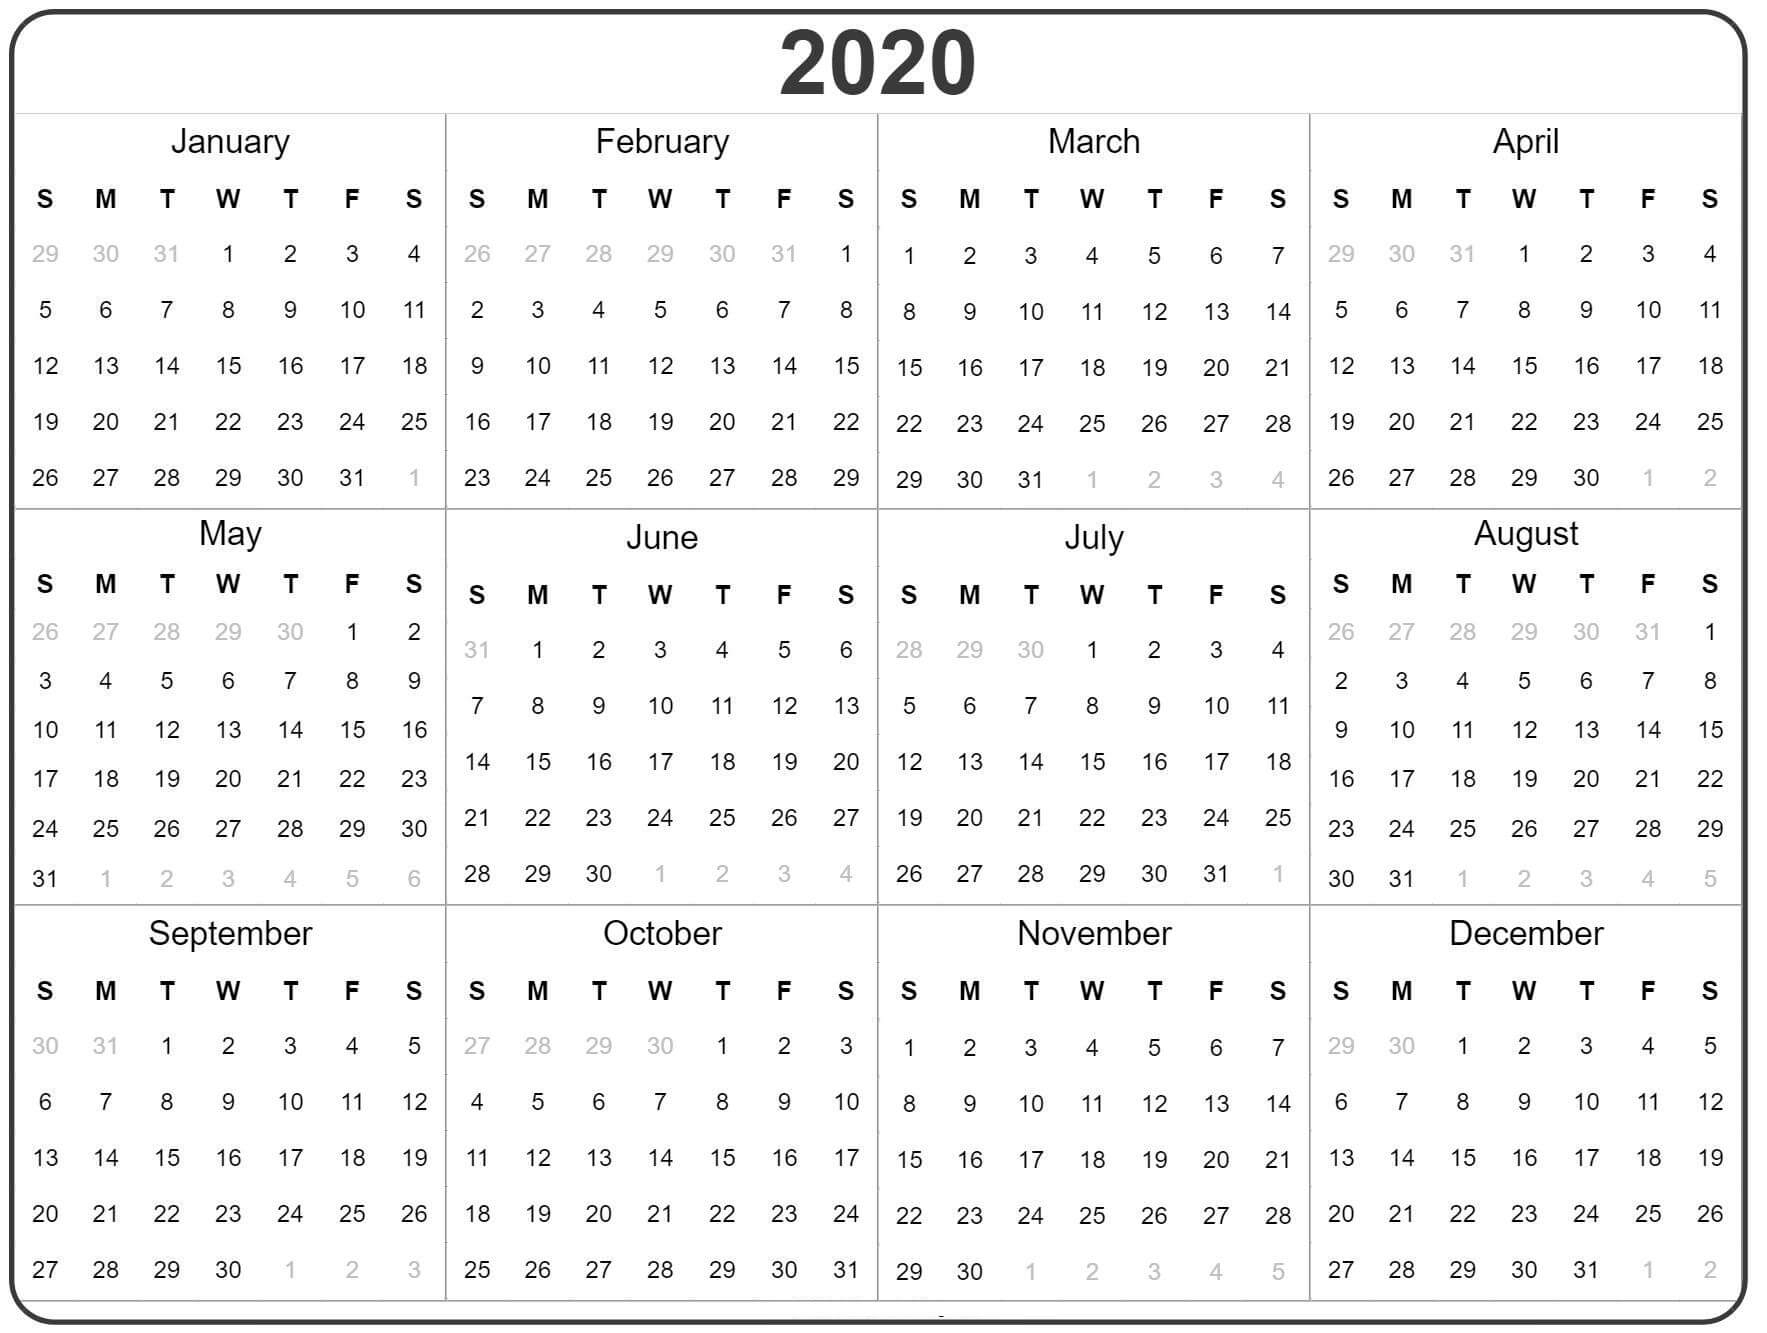 Free Yearly Calendar 2020 With Notes - 2019 Calendars For intended for Free Printable Year At A Glance Calendar 2020